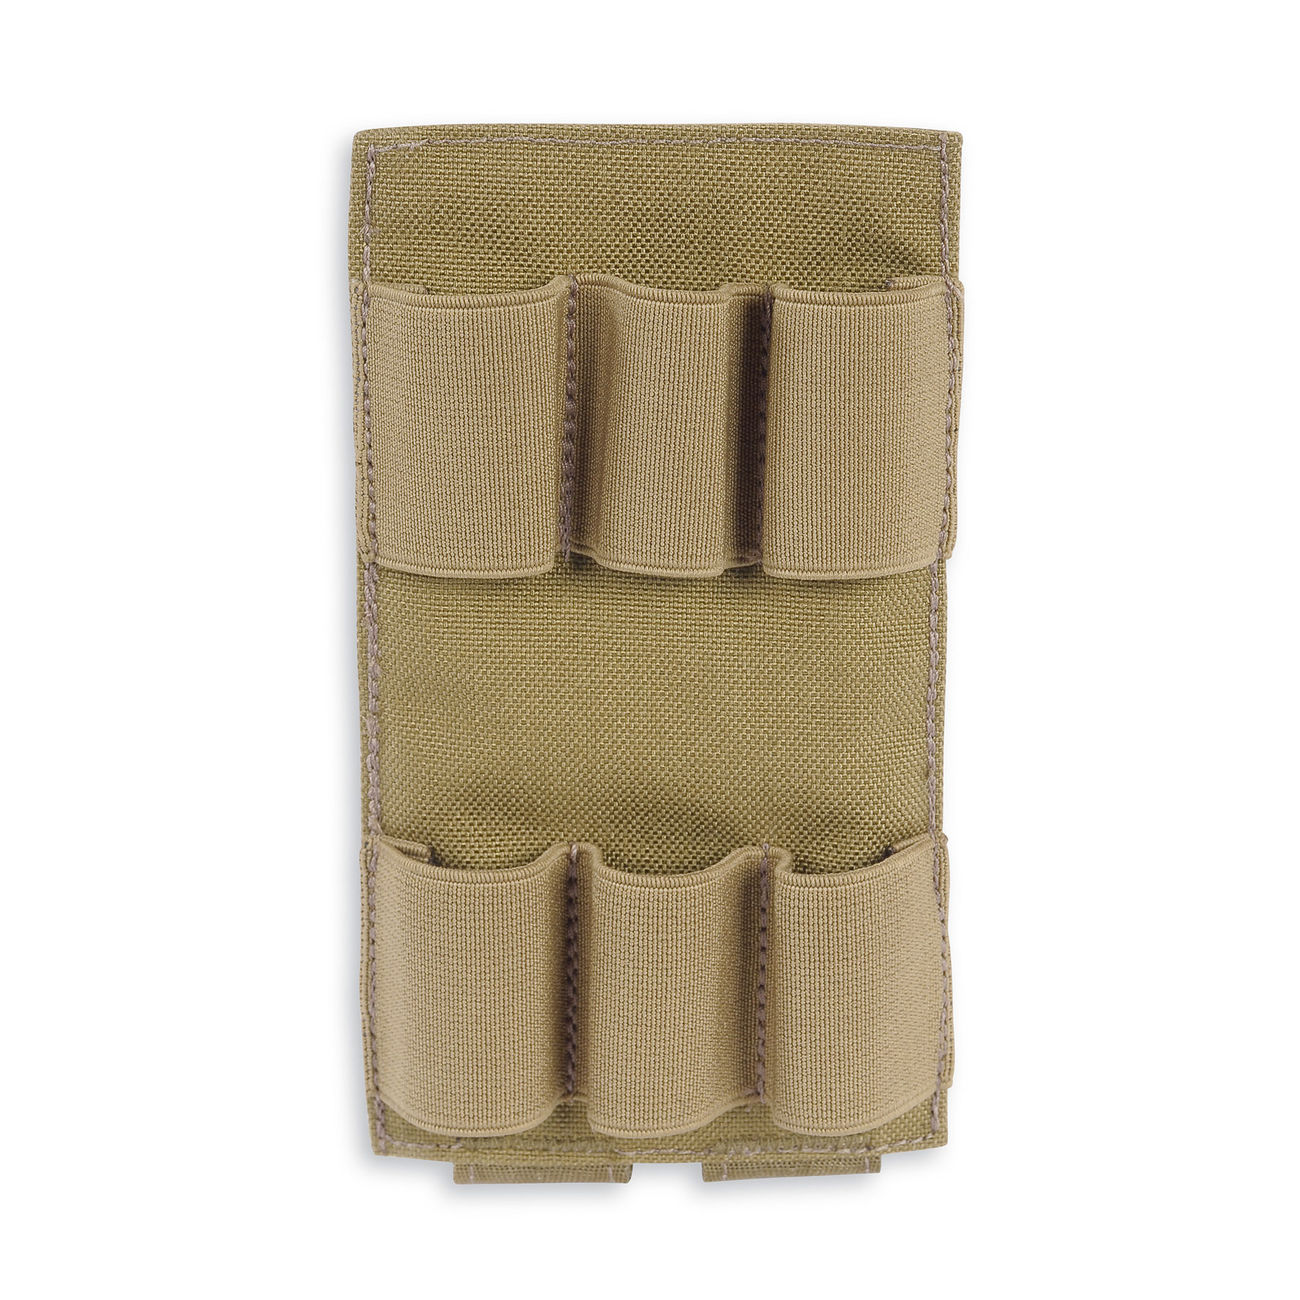 TT 6rd Shotgun Holder khaki 0